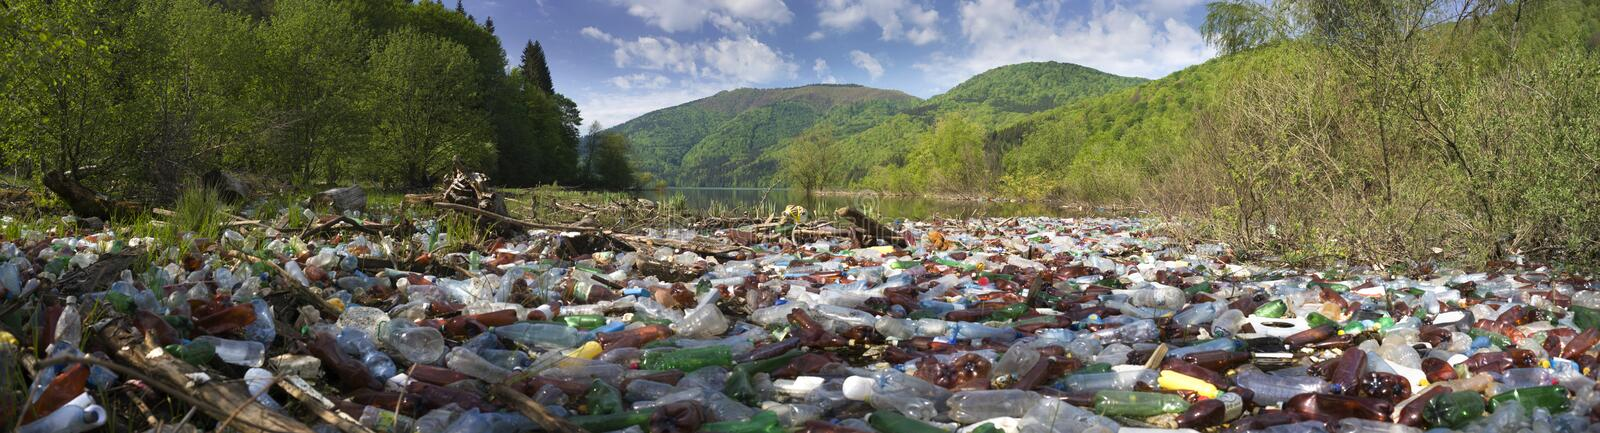 Special operation to clean up the river of debris stock foto's